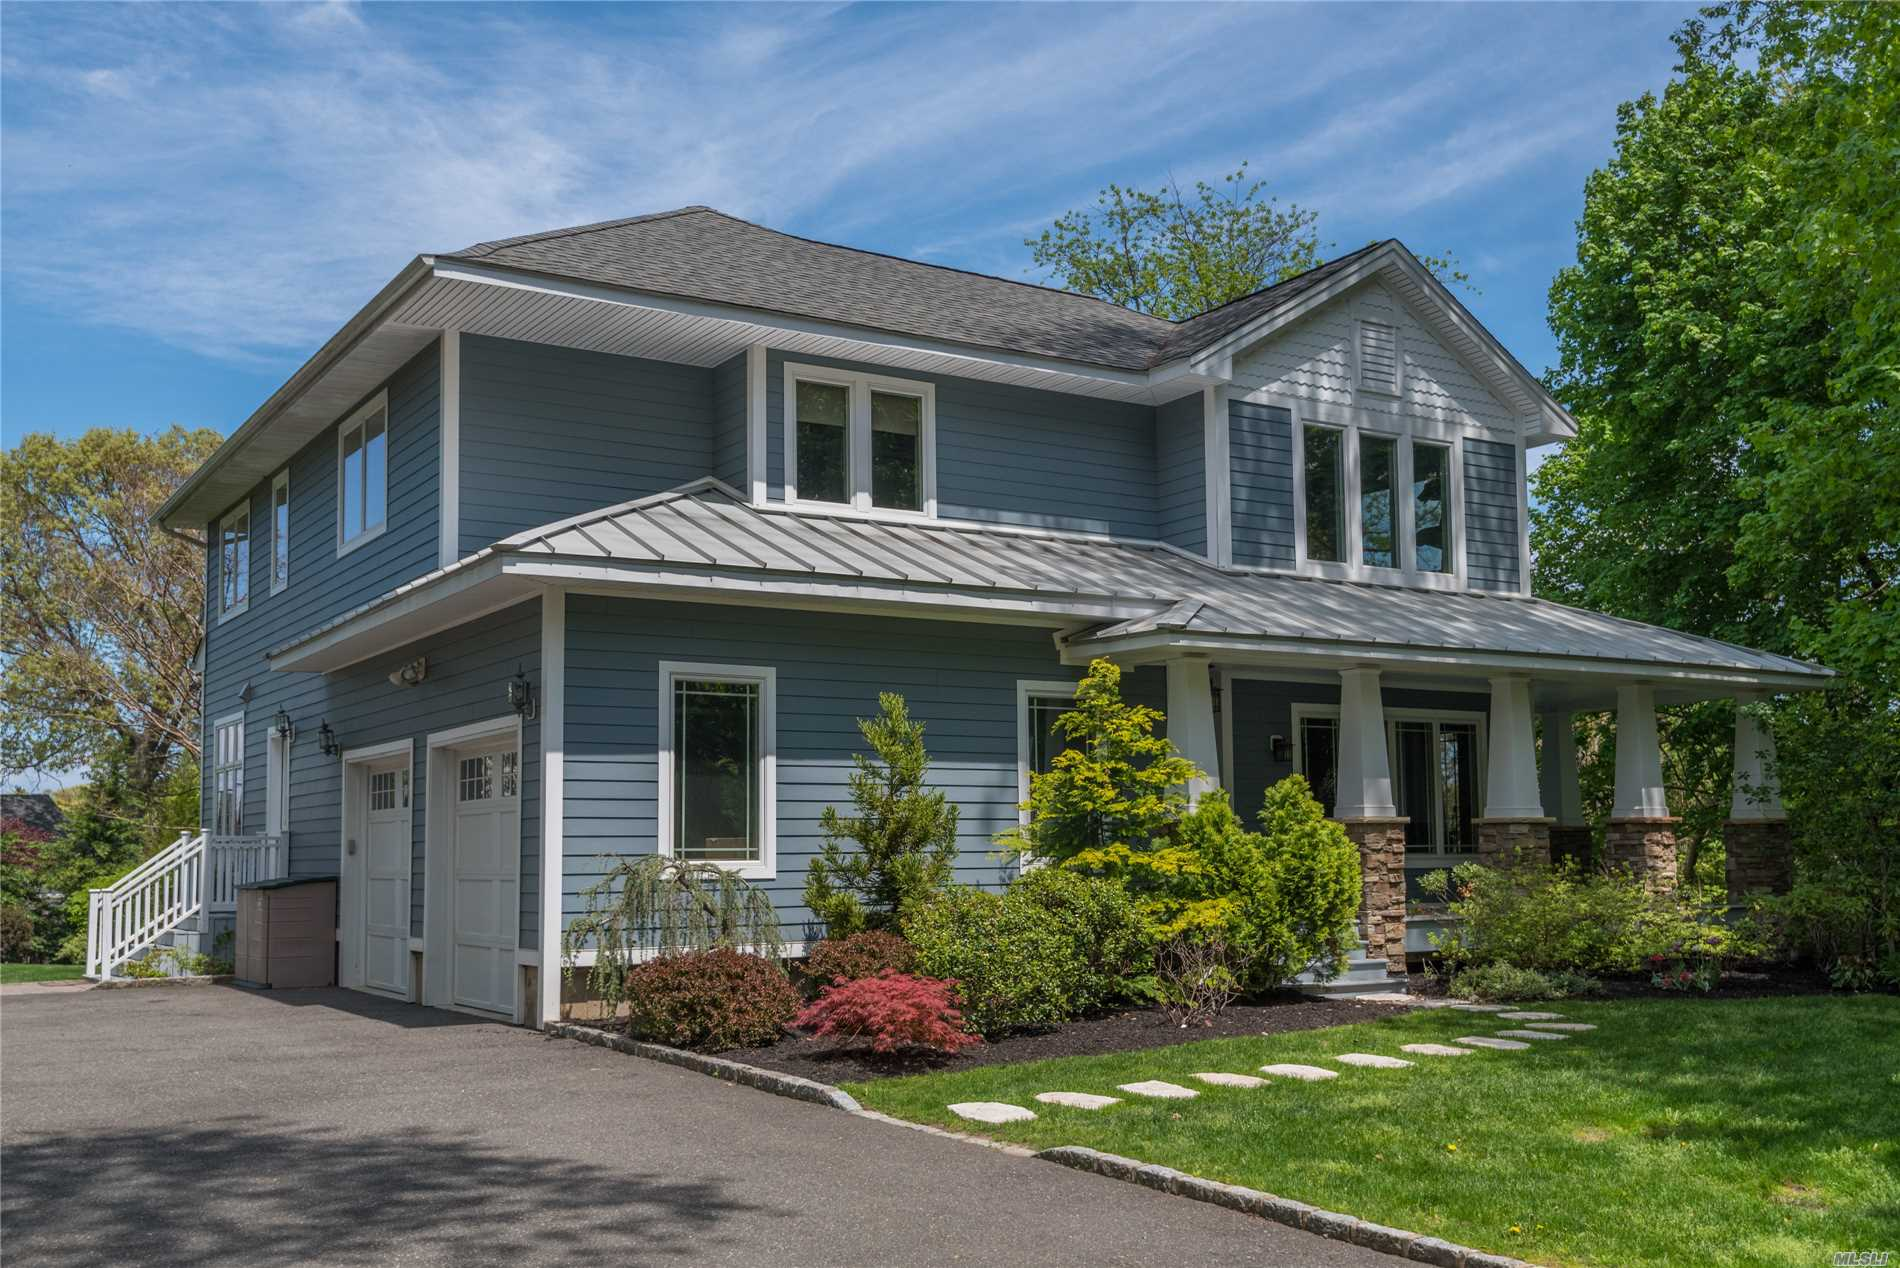 This Renovated 2008 One-Of-A-Kind Custom Residences Is Tucked Away At The End Of A Lovely Lattingtown Cul-De-Sac. It Overlooks The Mill Neck Creek And Is Set On Just A Shy One Acre Parcel. Blue-Stone Patio And Mature Plantings. Fabulous Front And Rear Covered Porches. All Generously Proportioned Rooms. Walls Of Windows Capturing Water Views. Perfect For Everyday Living And Wonderful Entertaining. Lattingtown Beach Rights. Glen Cove Golf Privileges.